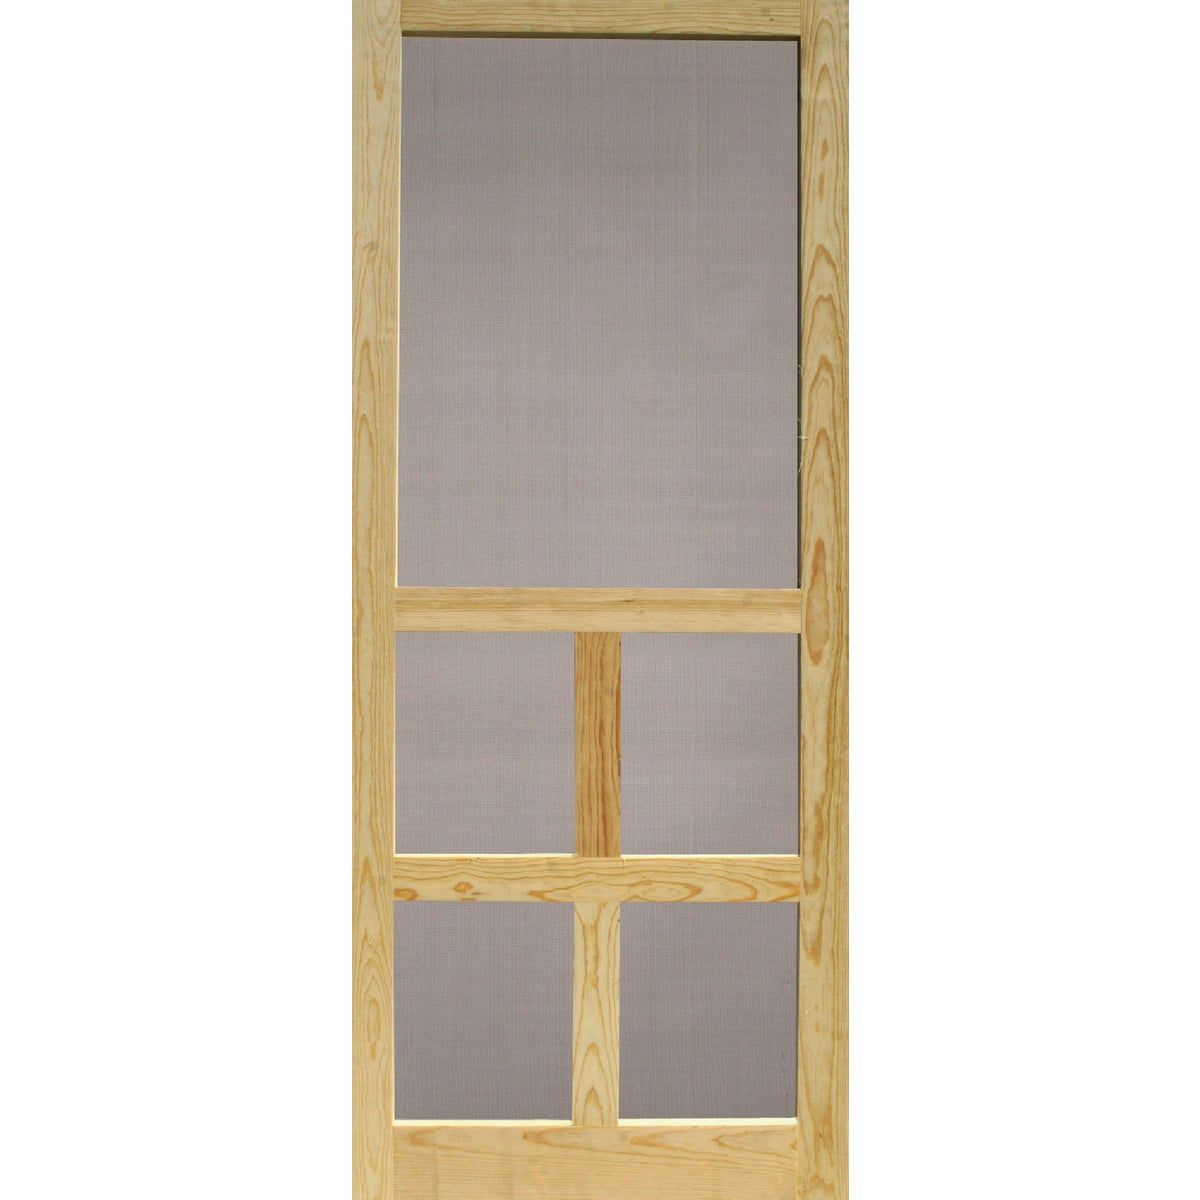 "32"" SEVILLA SCREEN DOOR - 2868 SEVILLA by Wood Prod Manufactur"